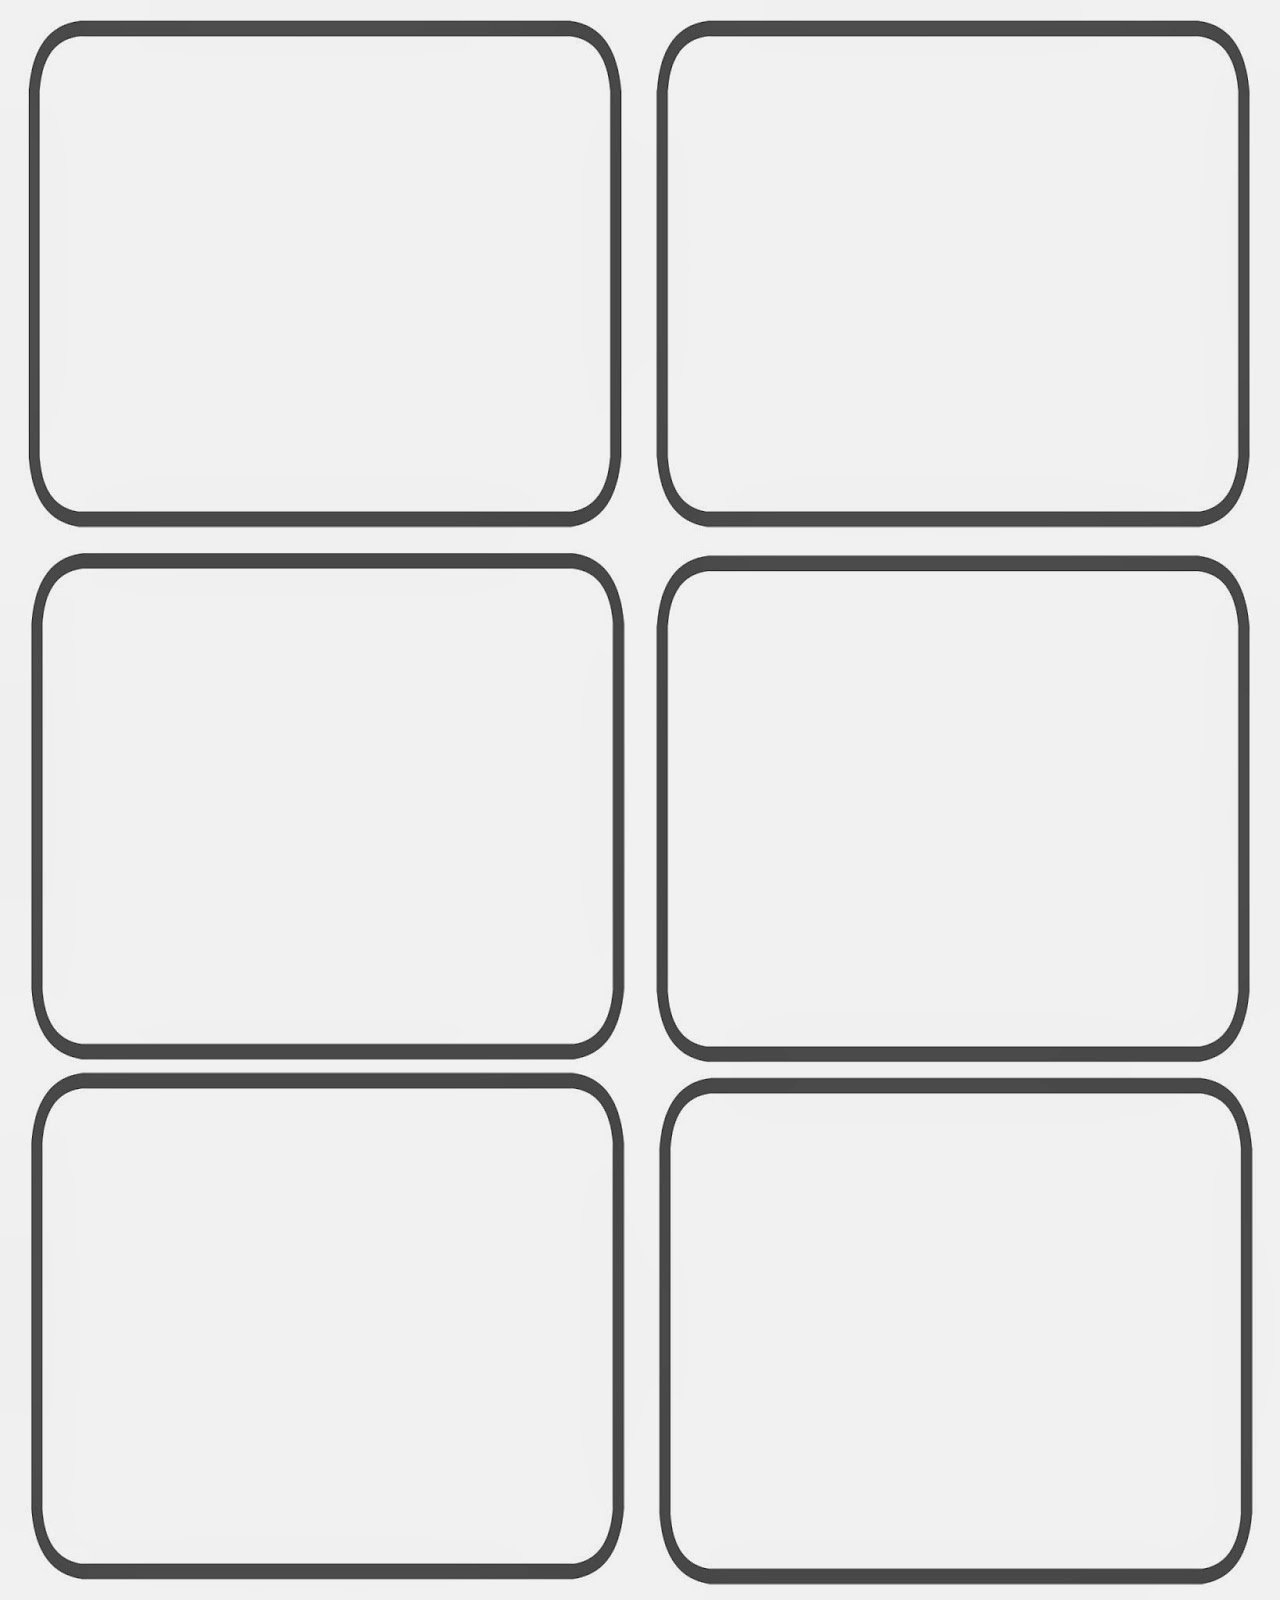 Blank Game Card Template Best Of Restlessrisa Free Printable Valentine Game